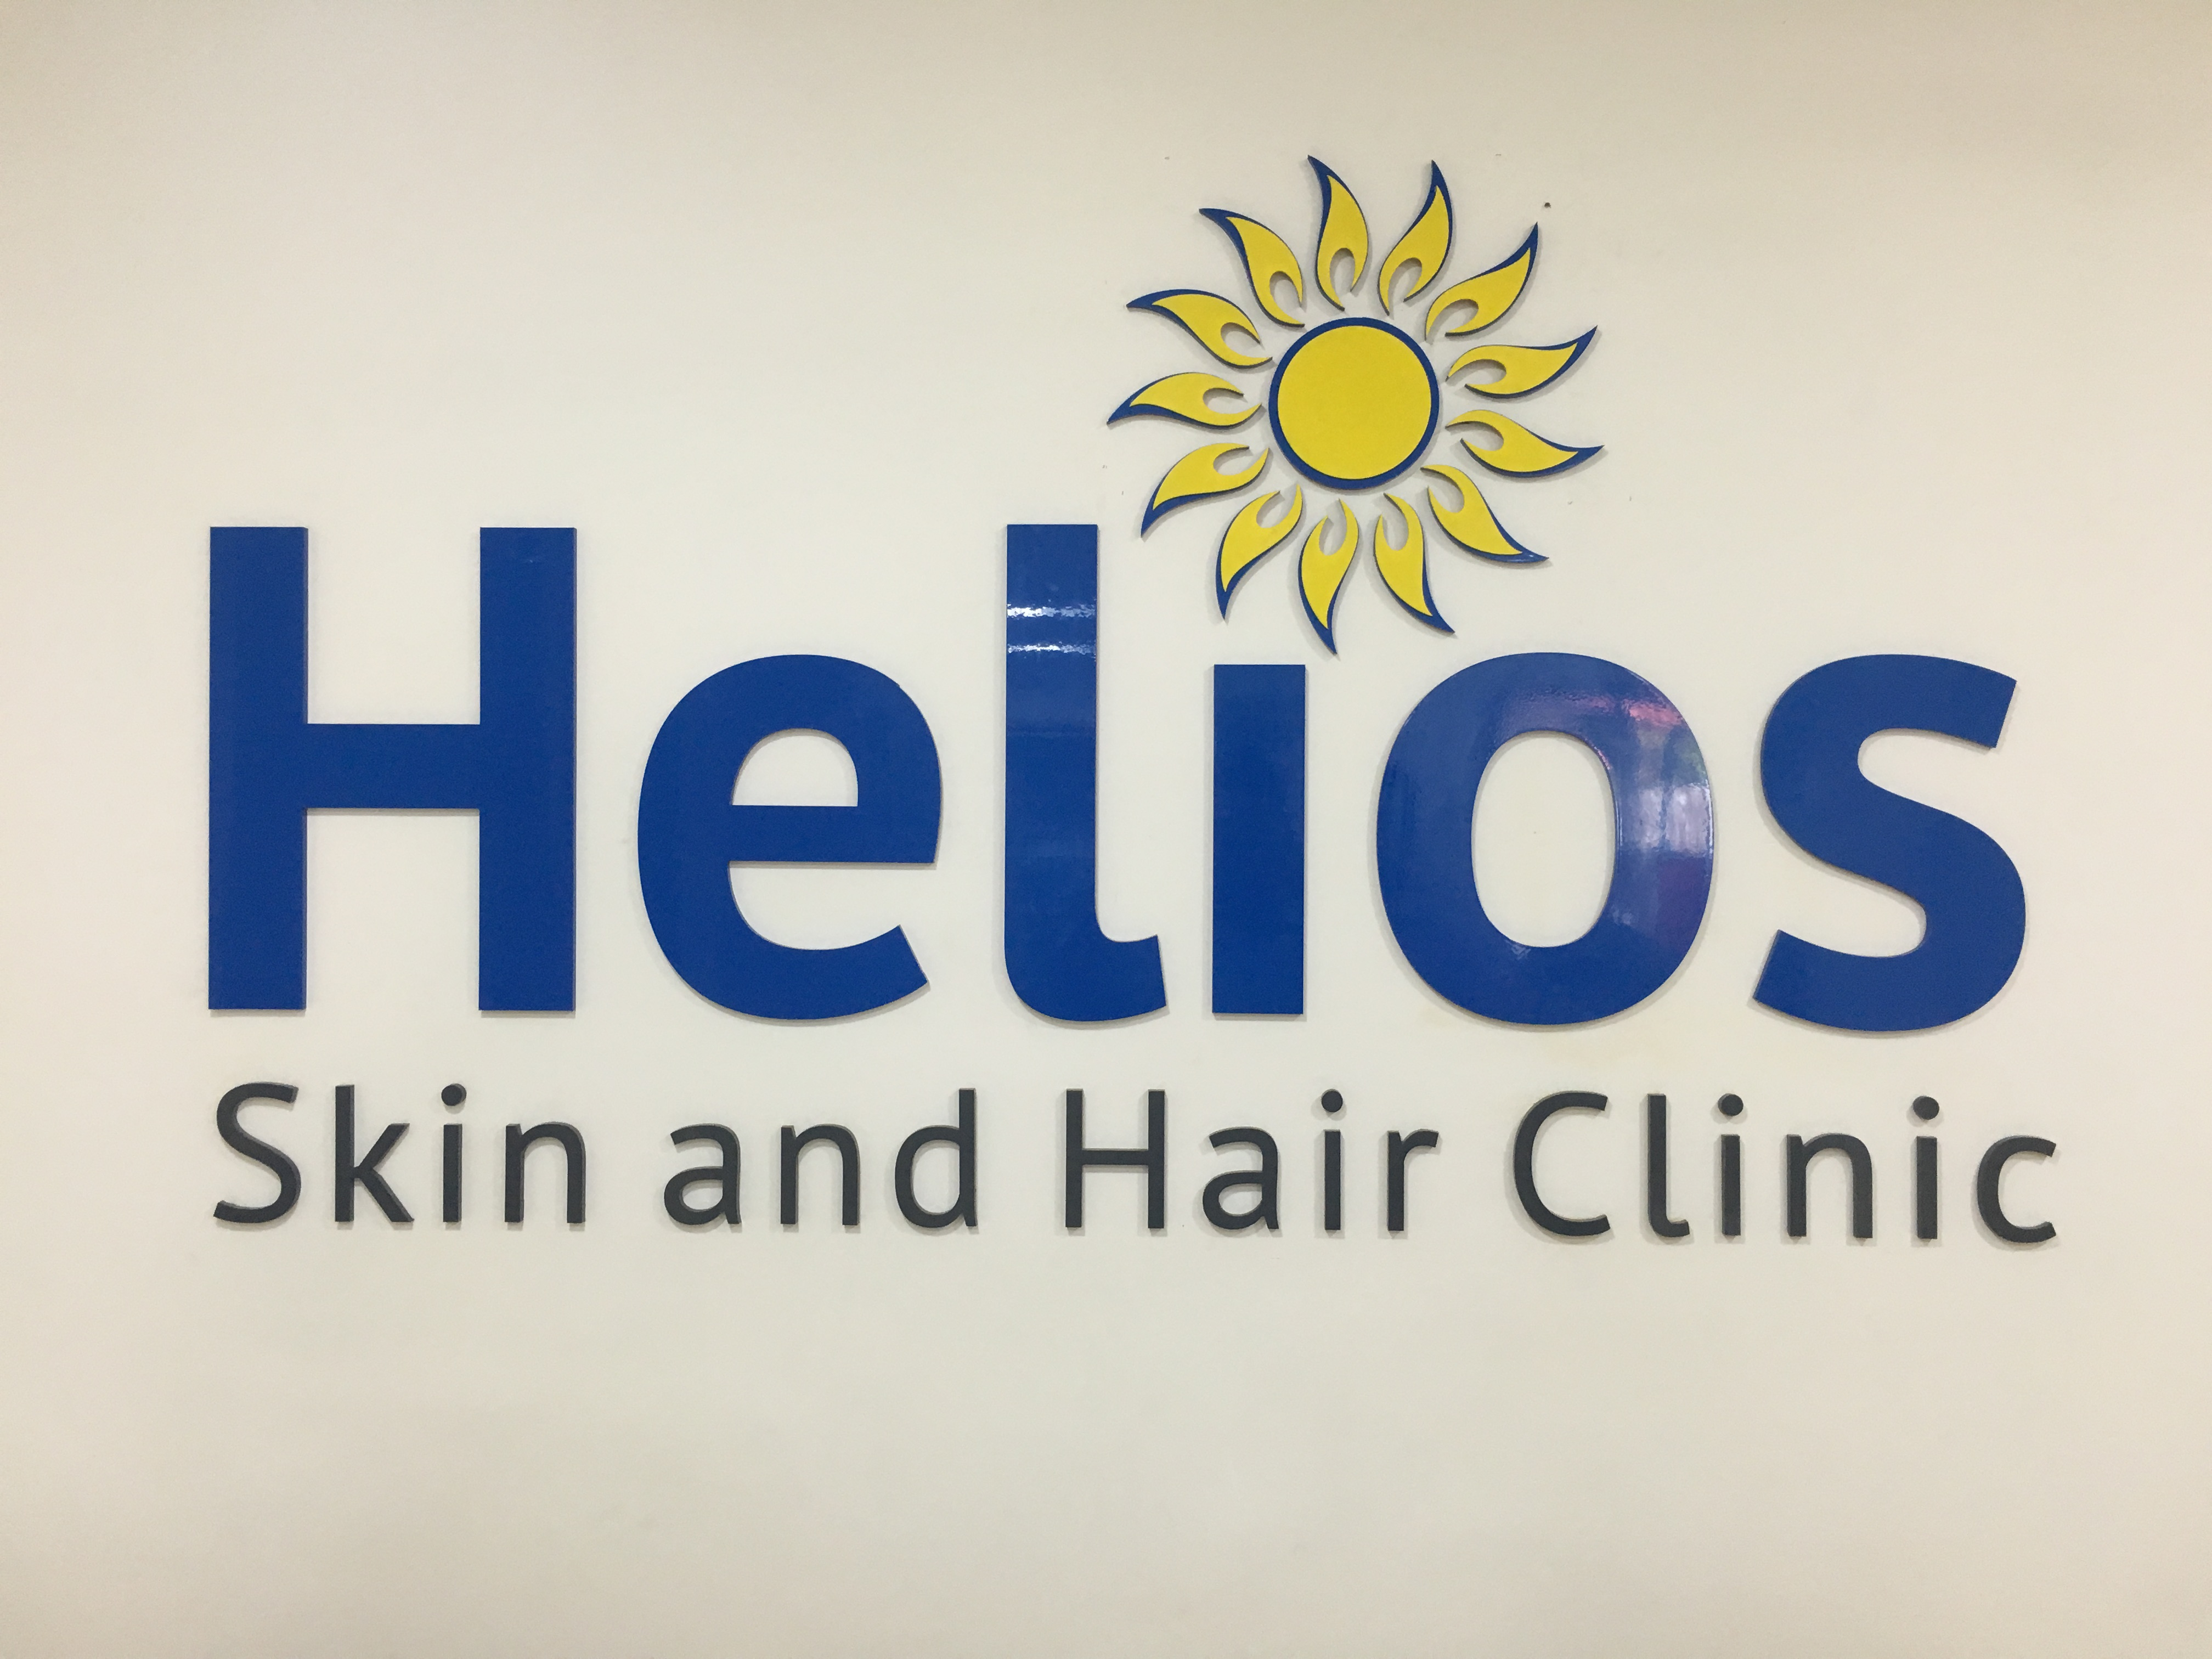 Helios Skin and Hair Clinic